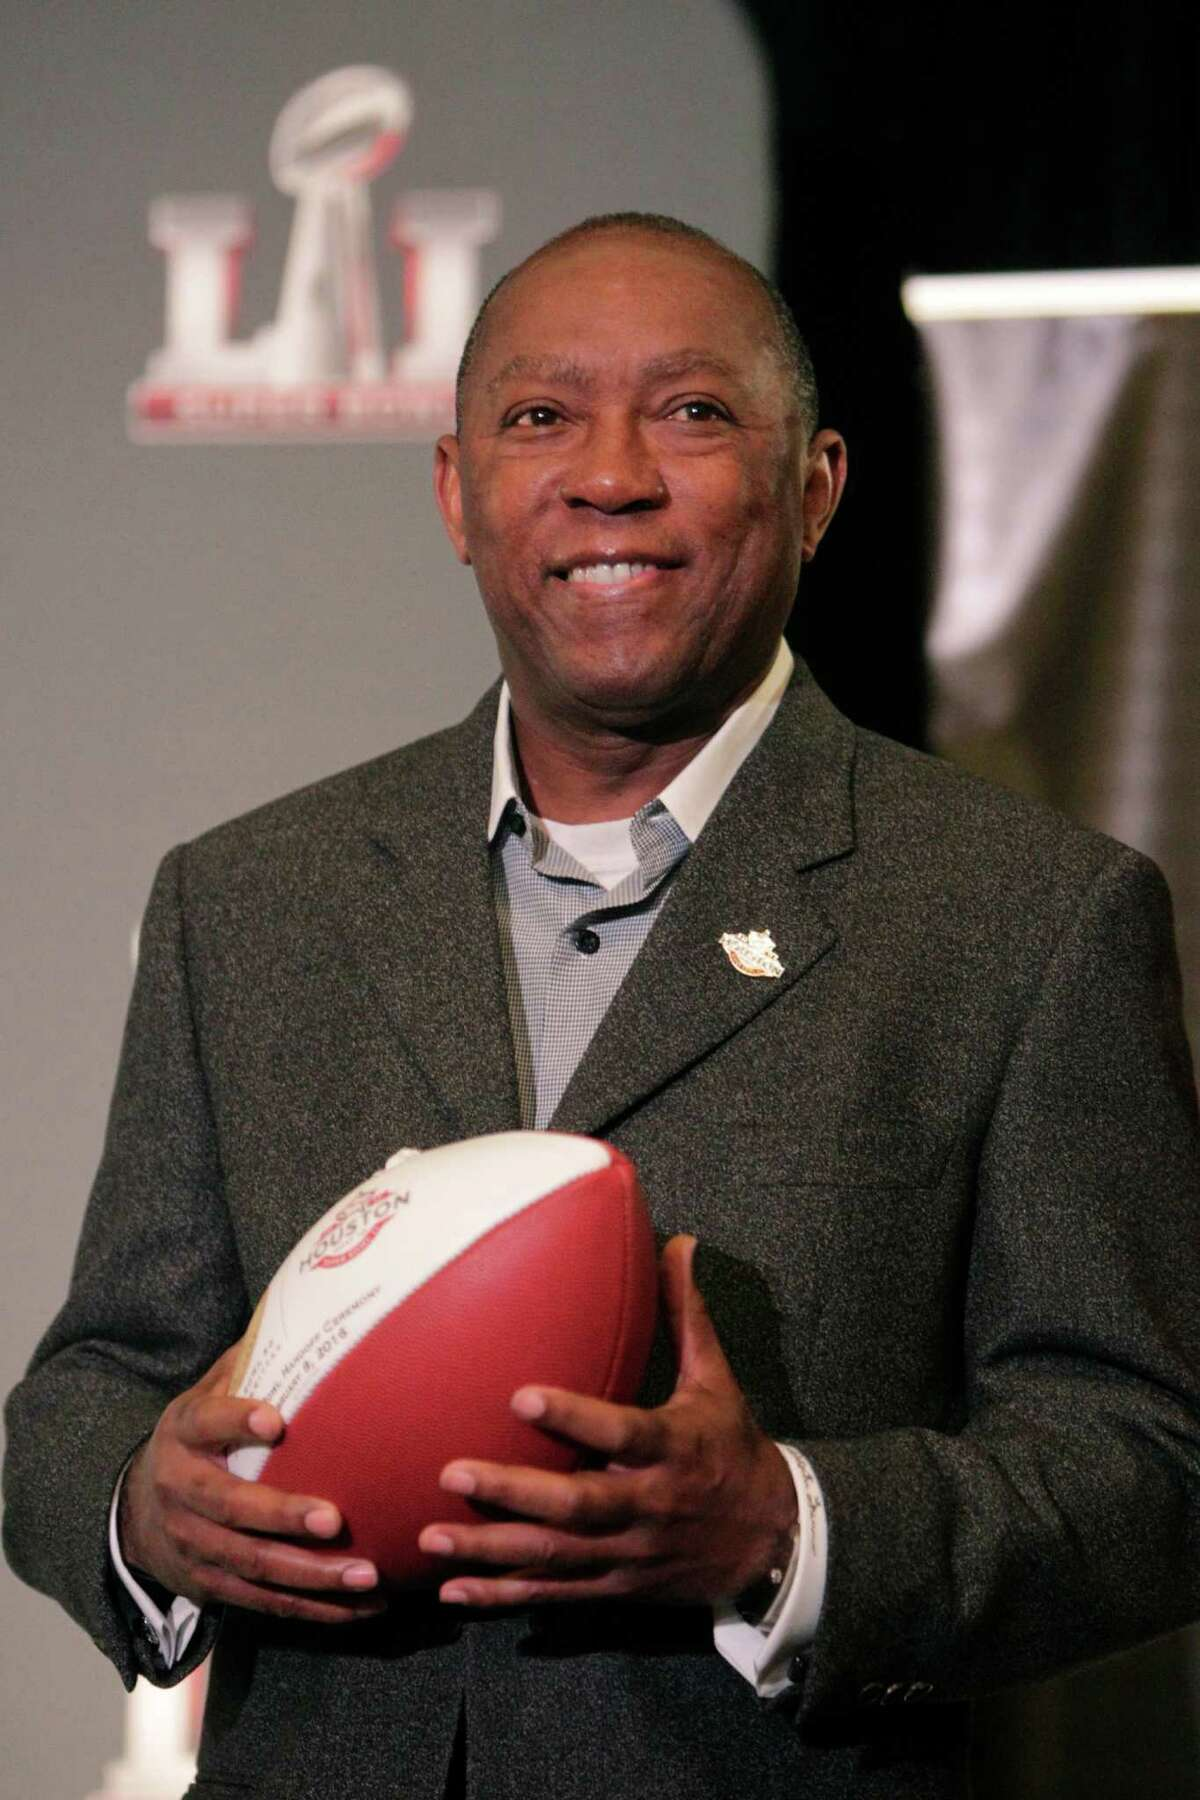 Mayor Sylvester Turner of Houston holds a football during a press conference where the Super Bowl LI committee took the Super Bowl handoff from San Francisco on Monday, February 8, 2016 in San Francisco, Calif.